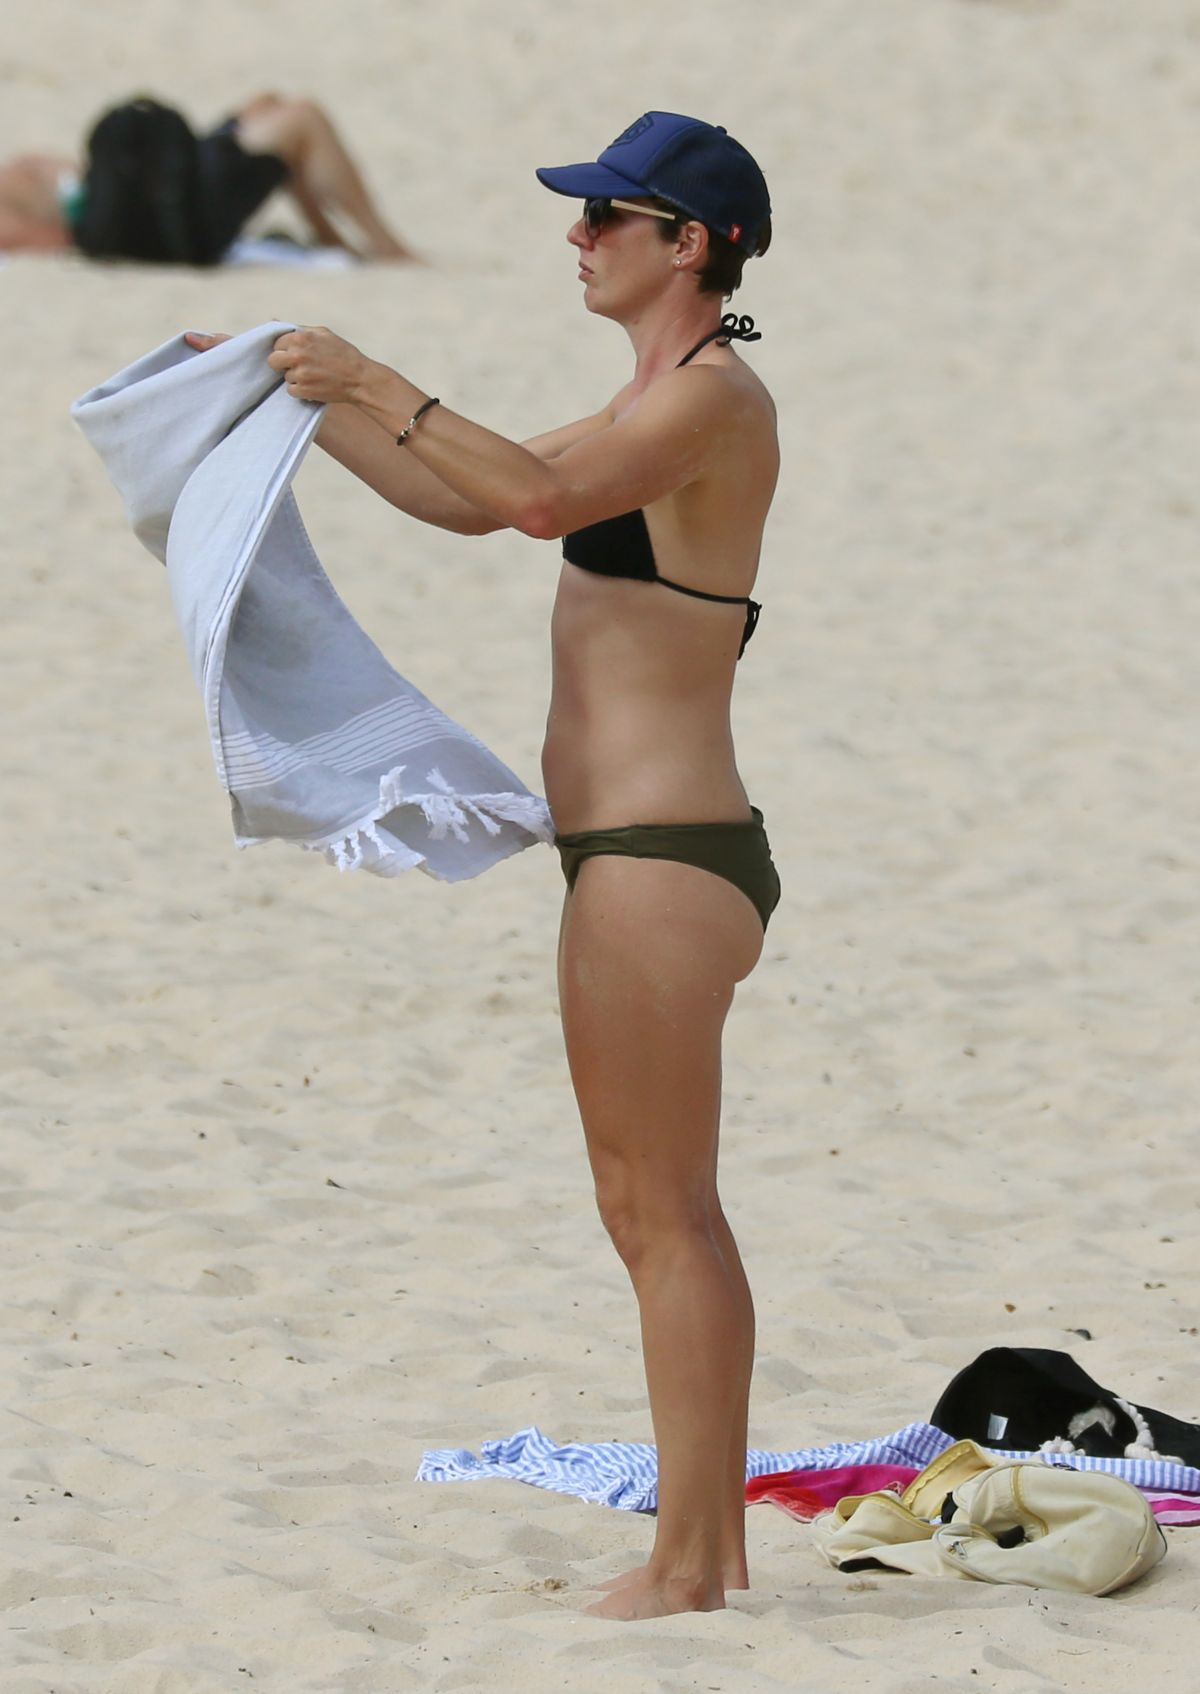 Fiona Falkiner in Bikini at Coogee Beach in Sydney Pic 31 of 35